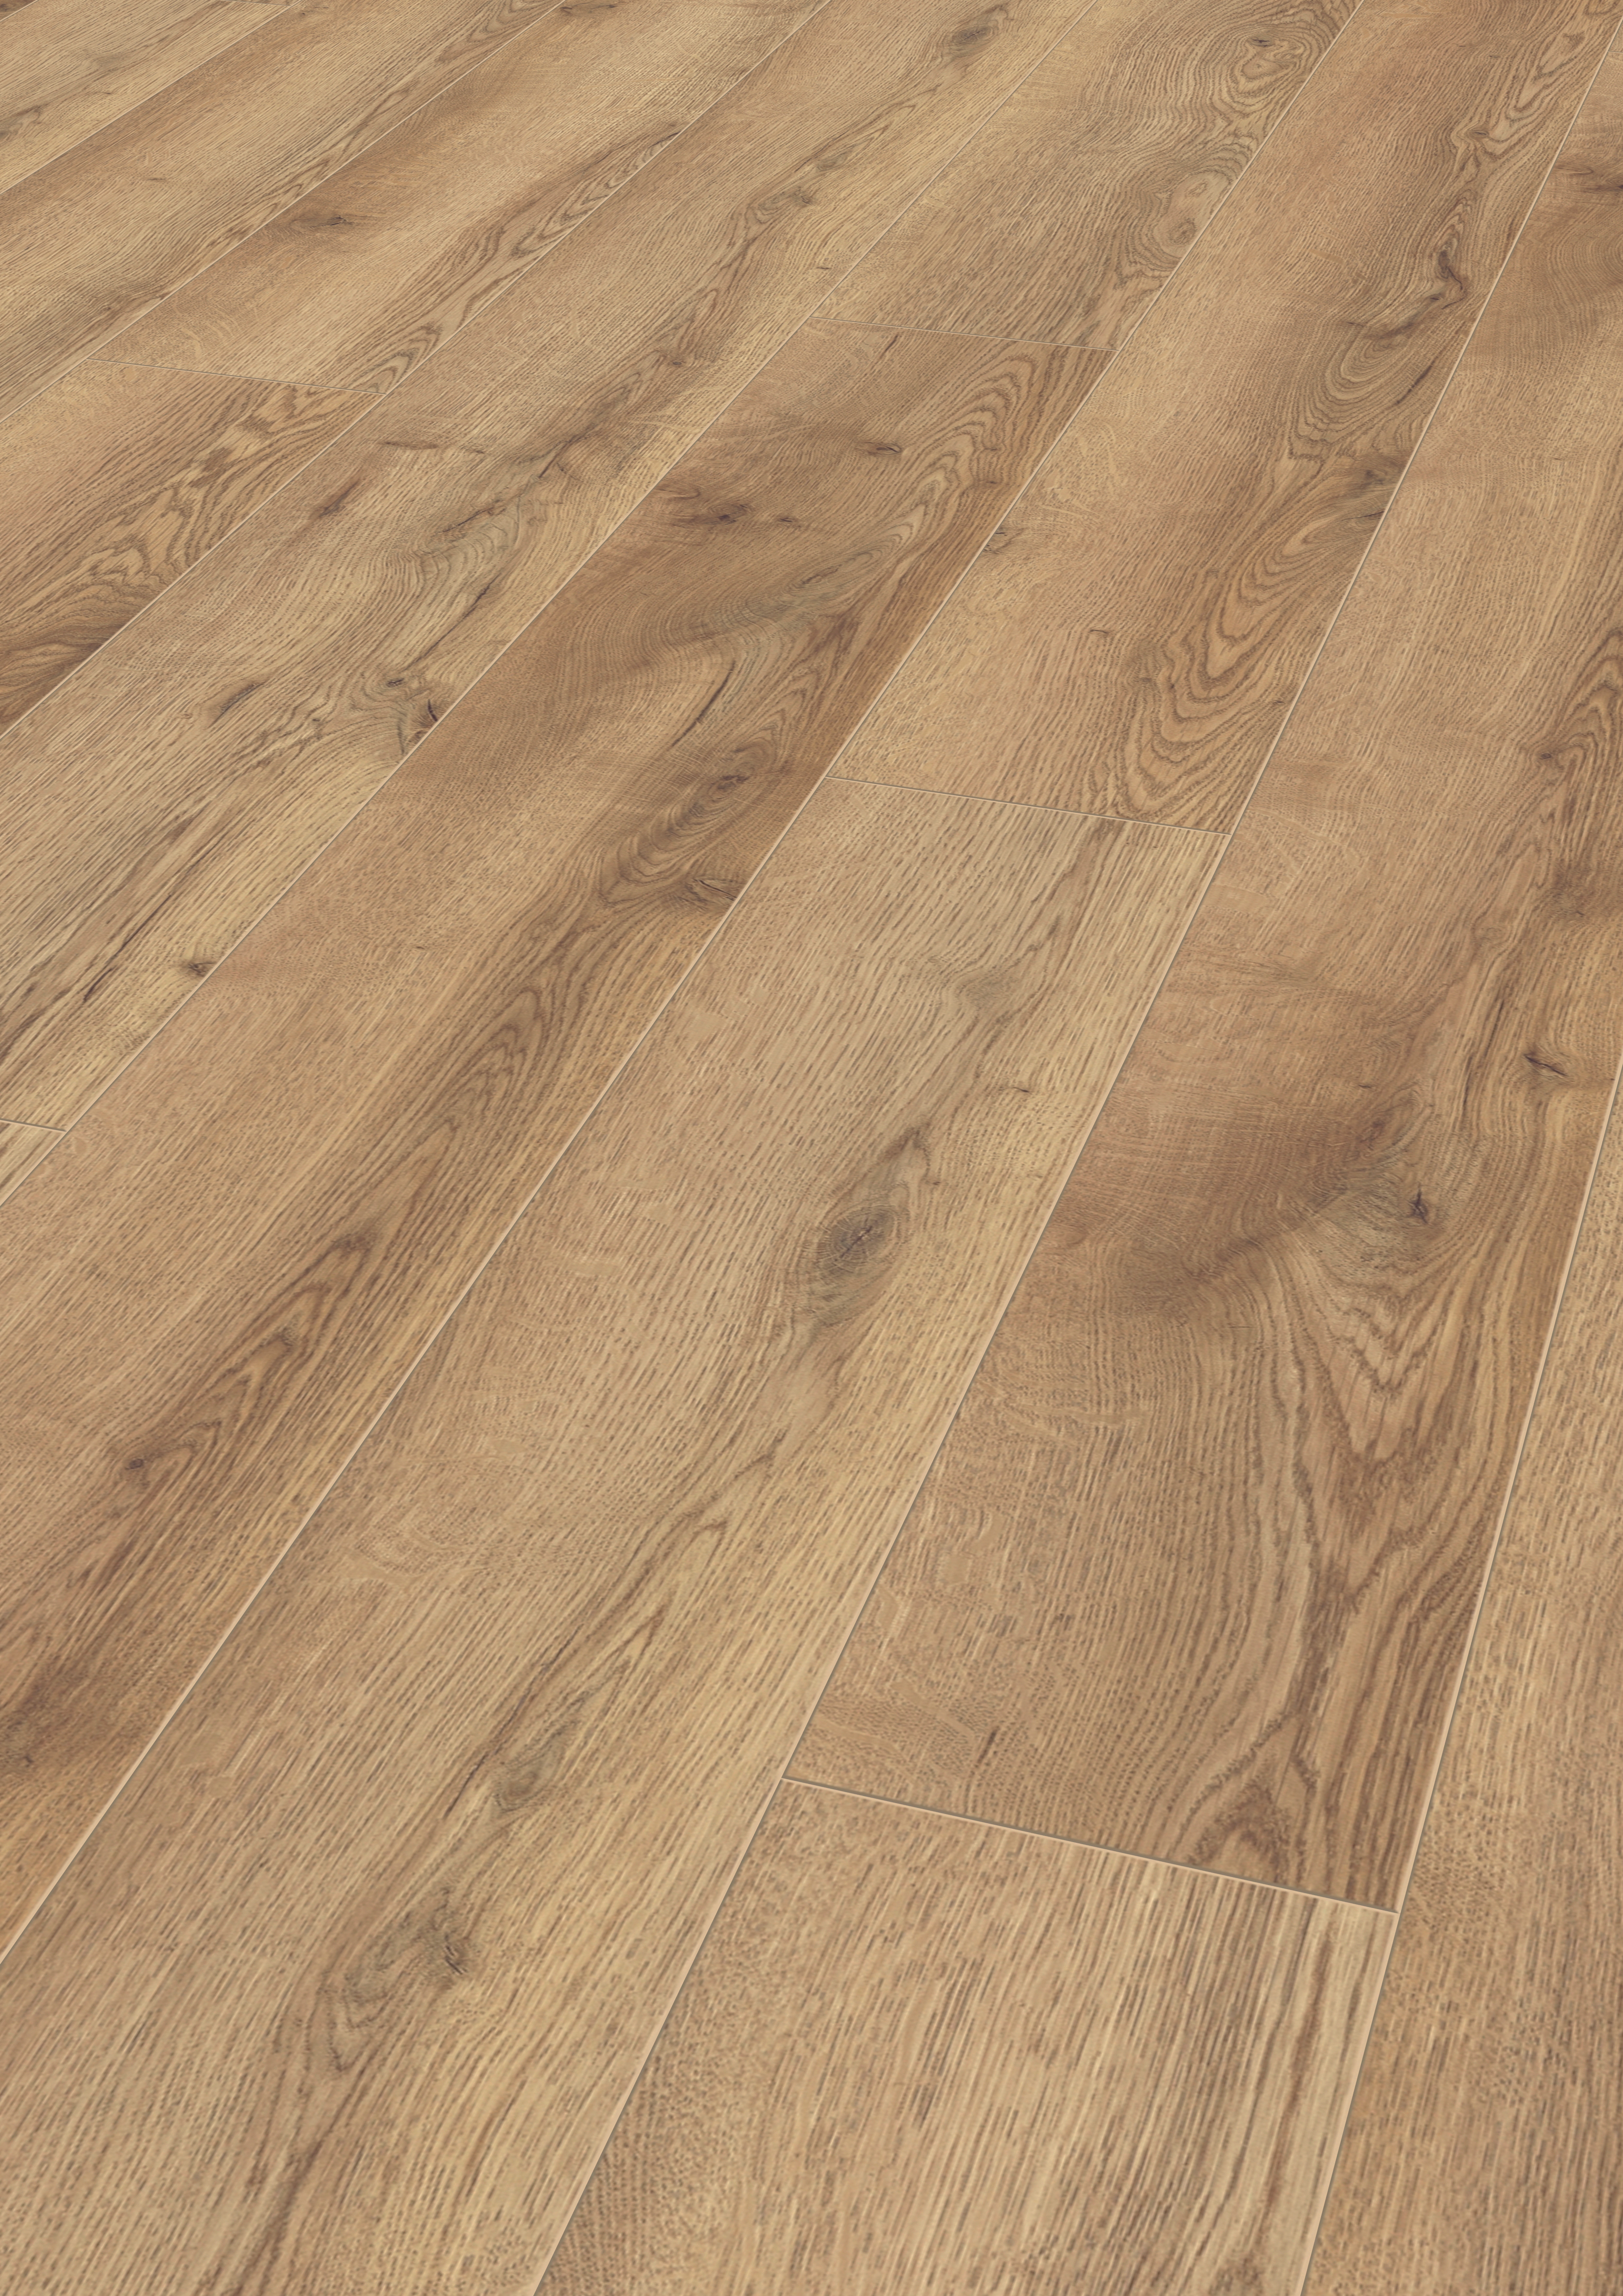 hardwood floor installation cost toronto of mammut laminate flooring in country house plank style kronotex intended for download picture amp